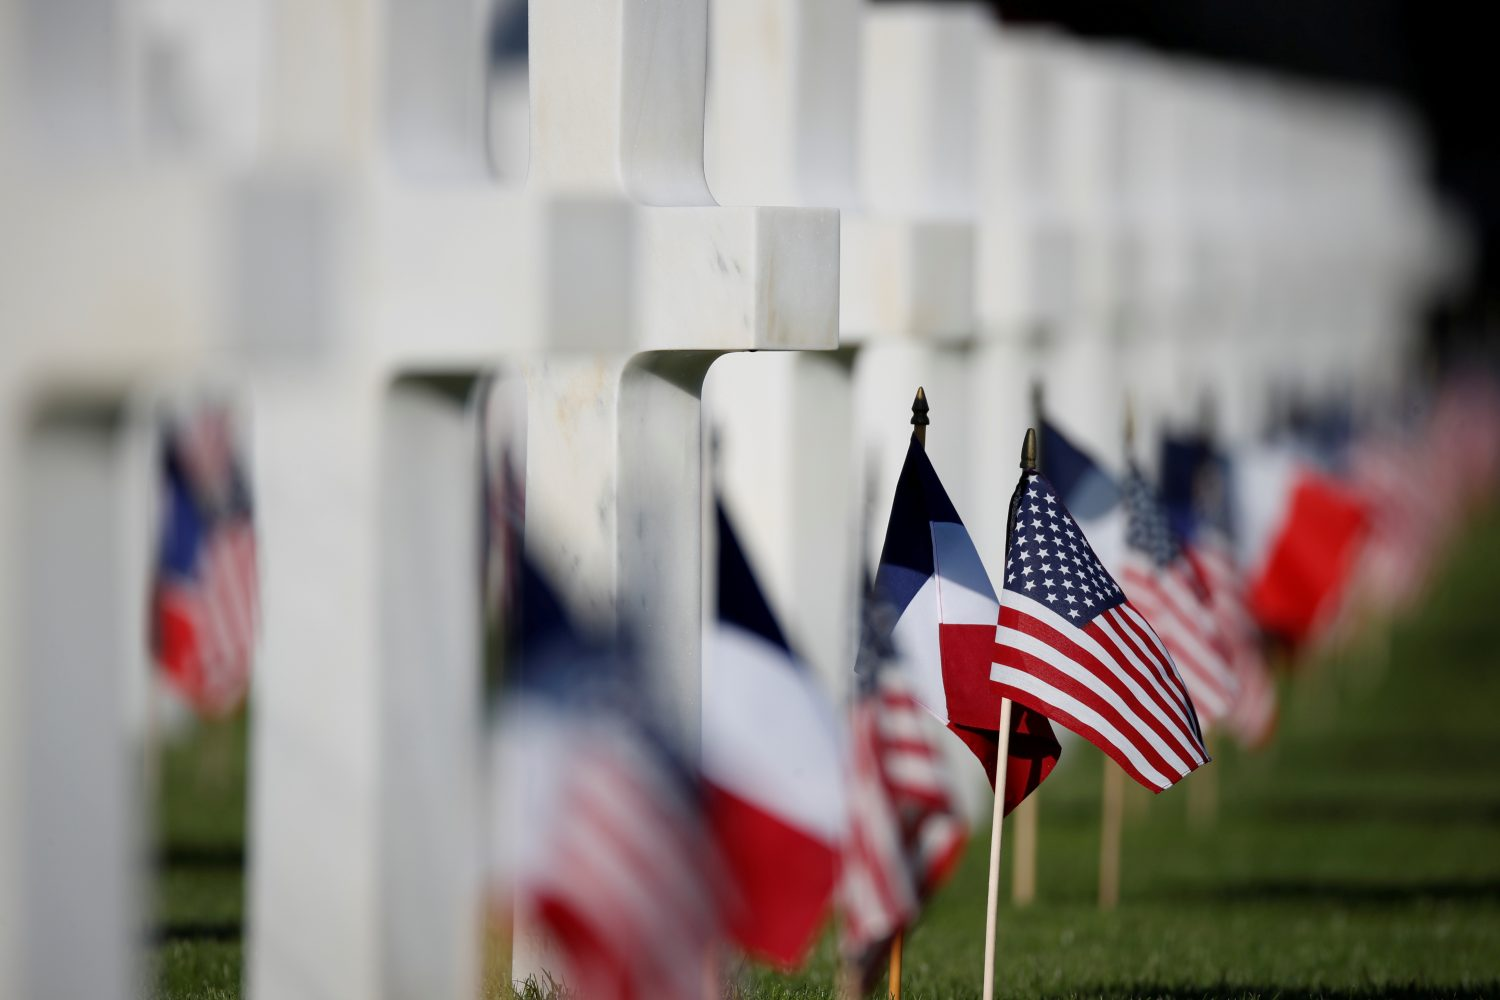 U.S. and French flags are seen in the American cemetery of Colleville-sur-Mer in Normandy, France, June 6, 2019. REUTERS/Christian Hartmann